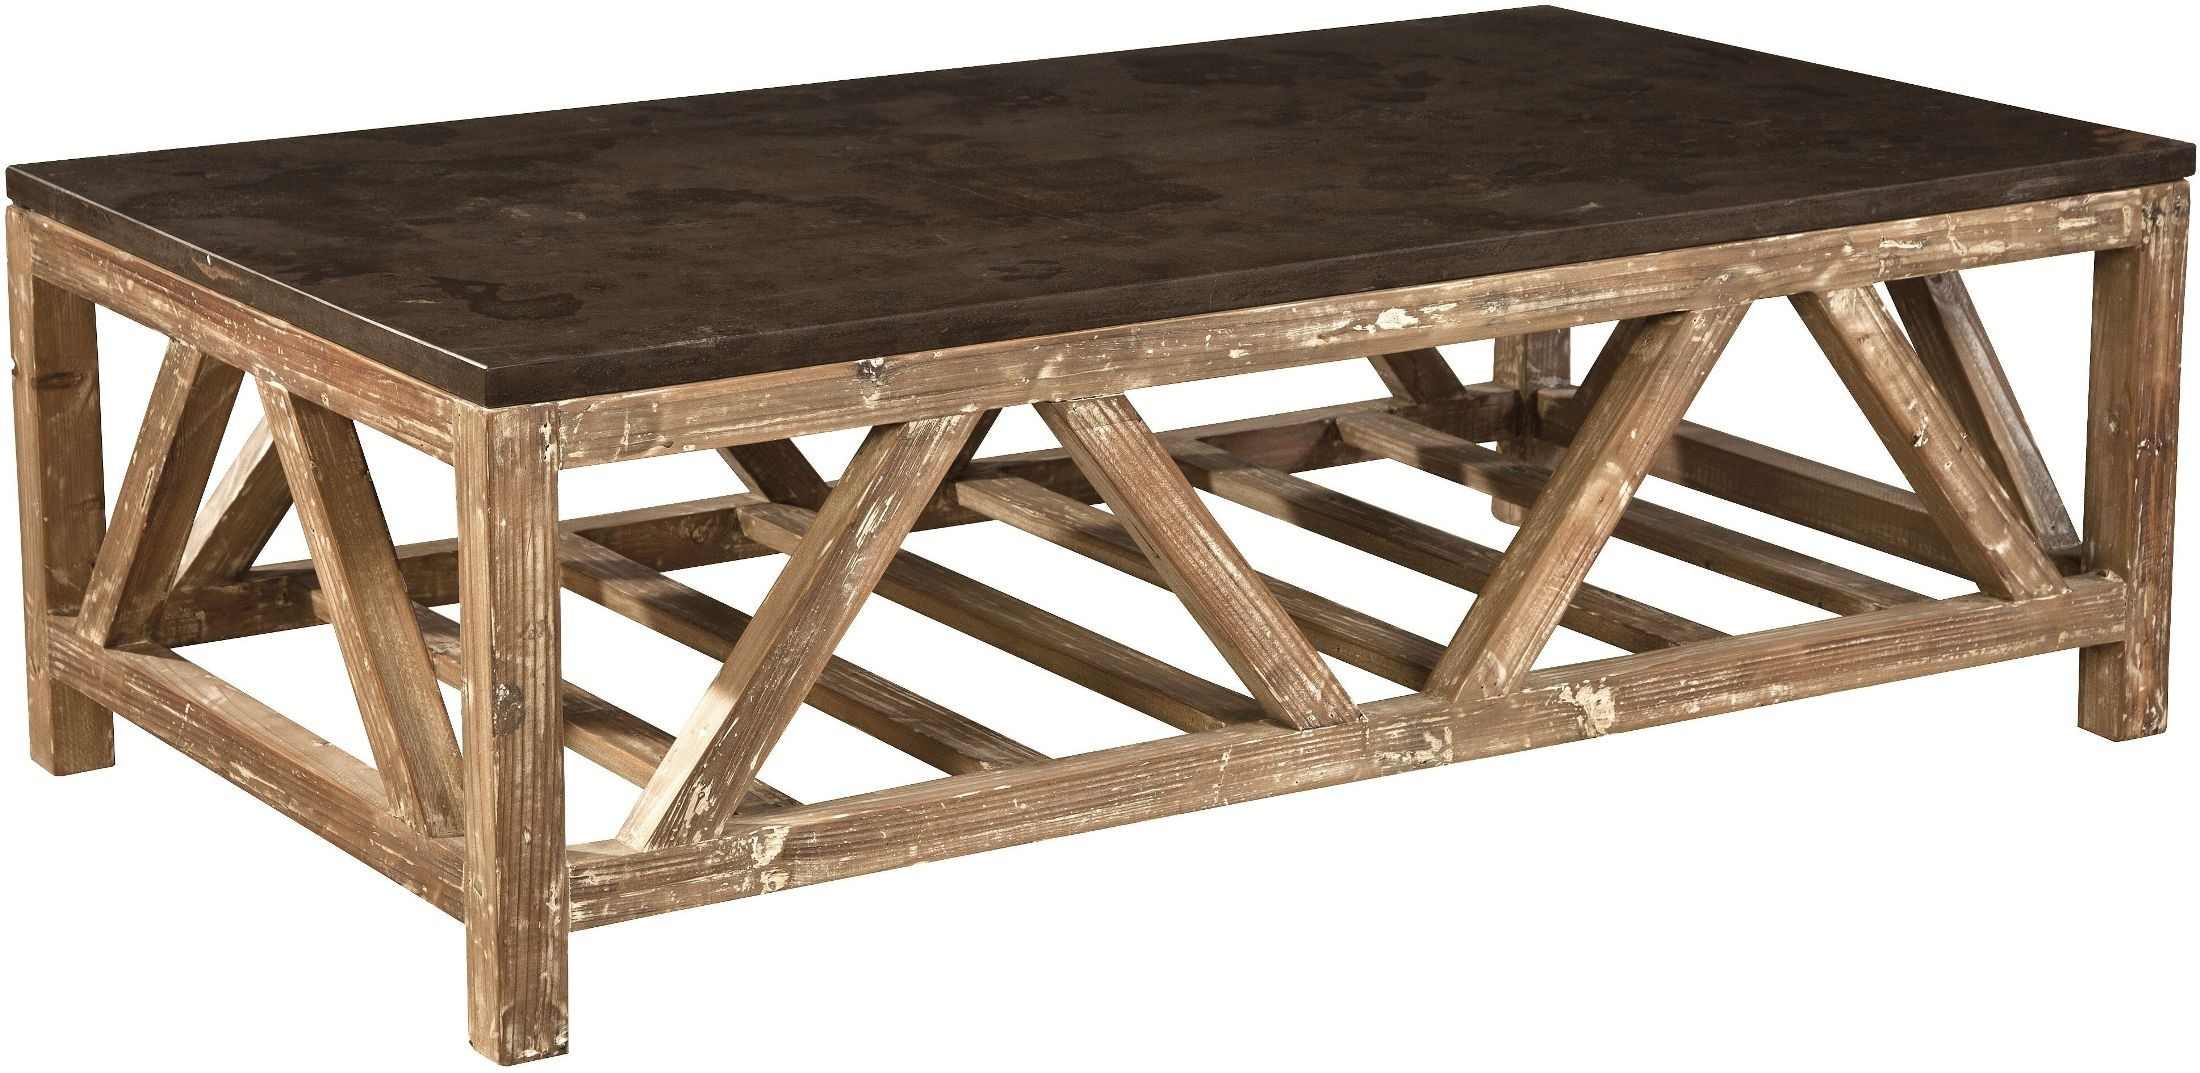 Marvelous Old Fir And Bluestone Coffee Table